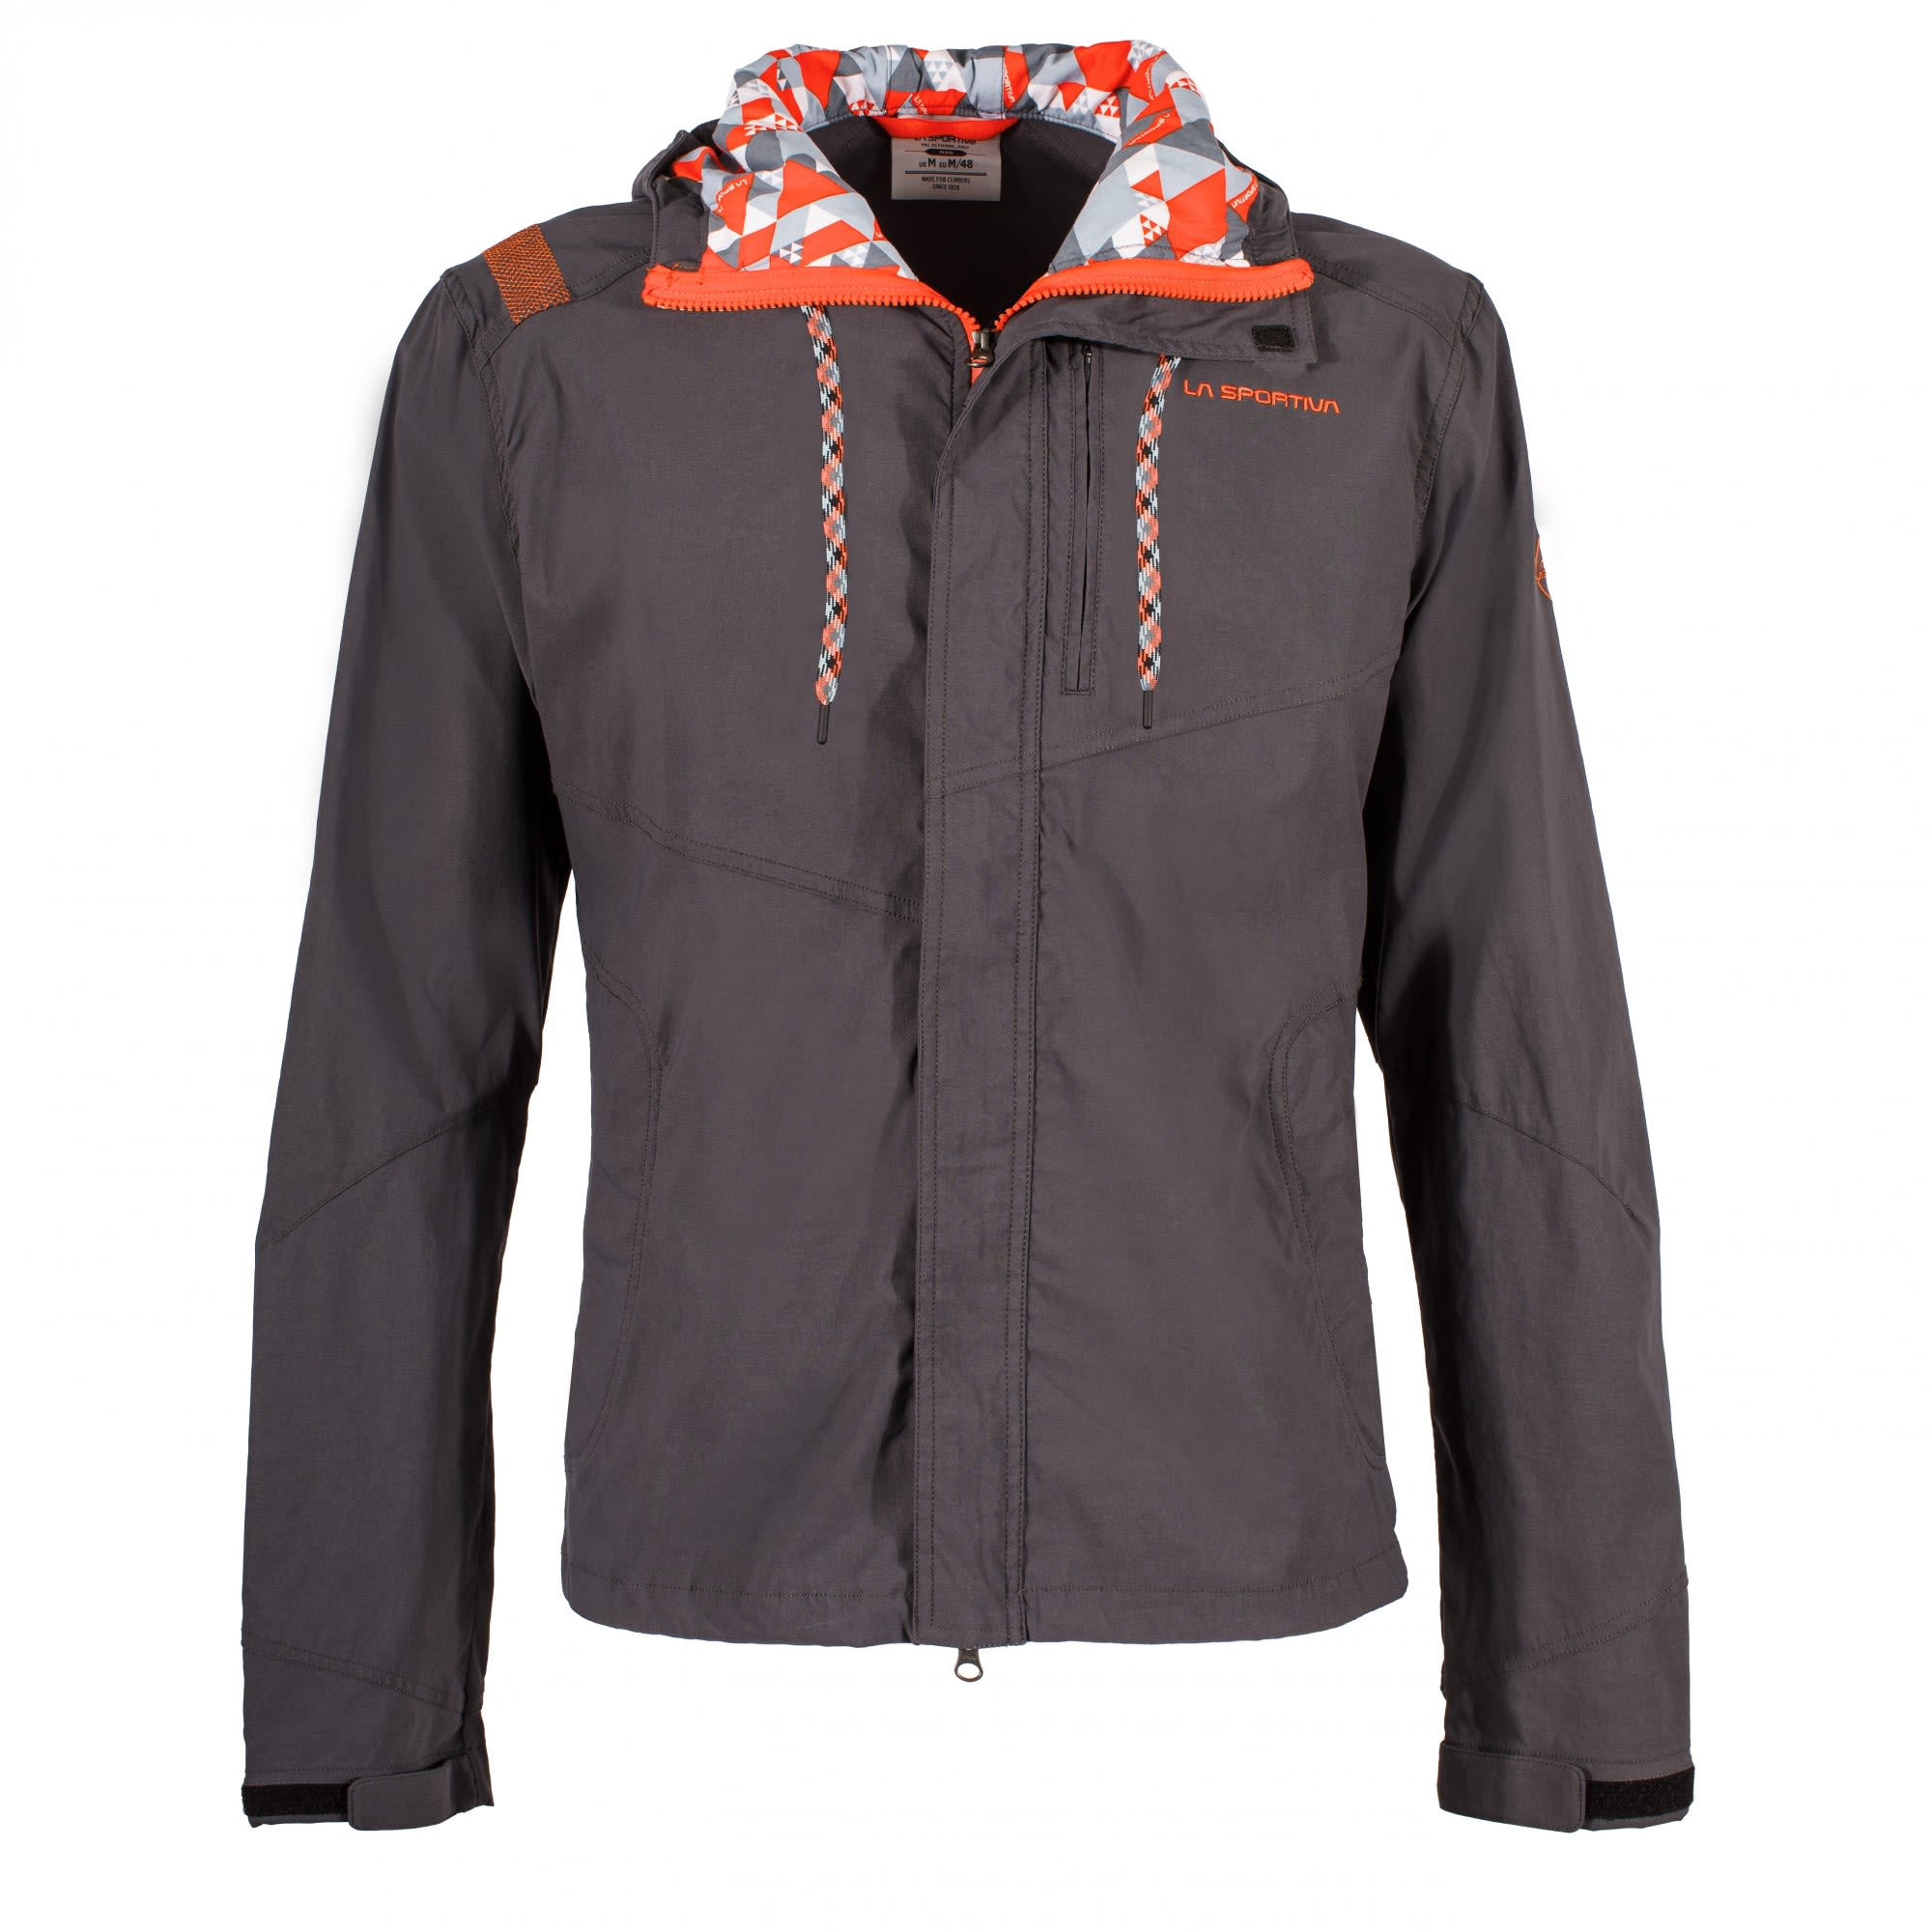 La Sportiva Grade Jacket Orange, Male Freizeitjacke, L